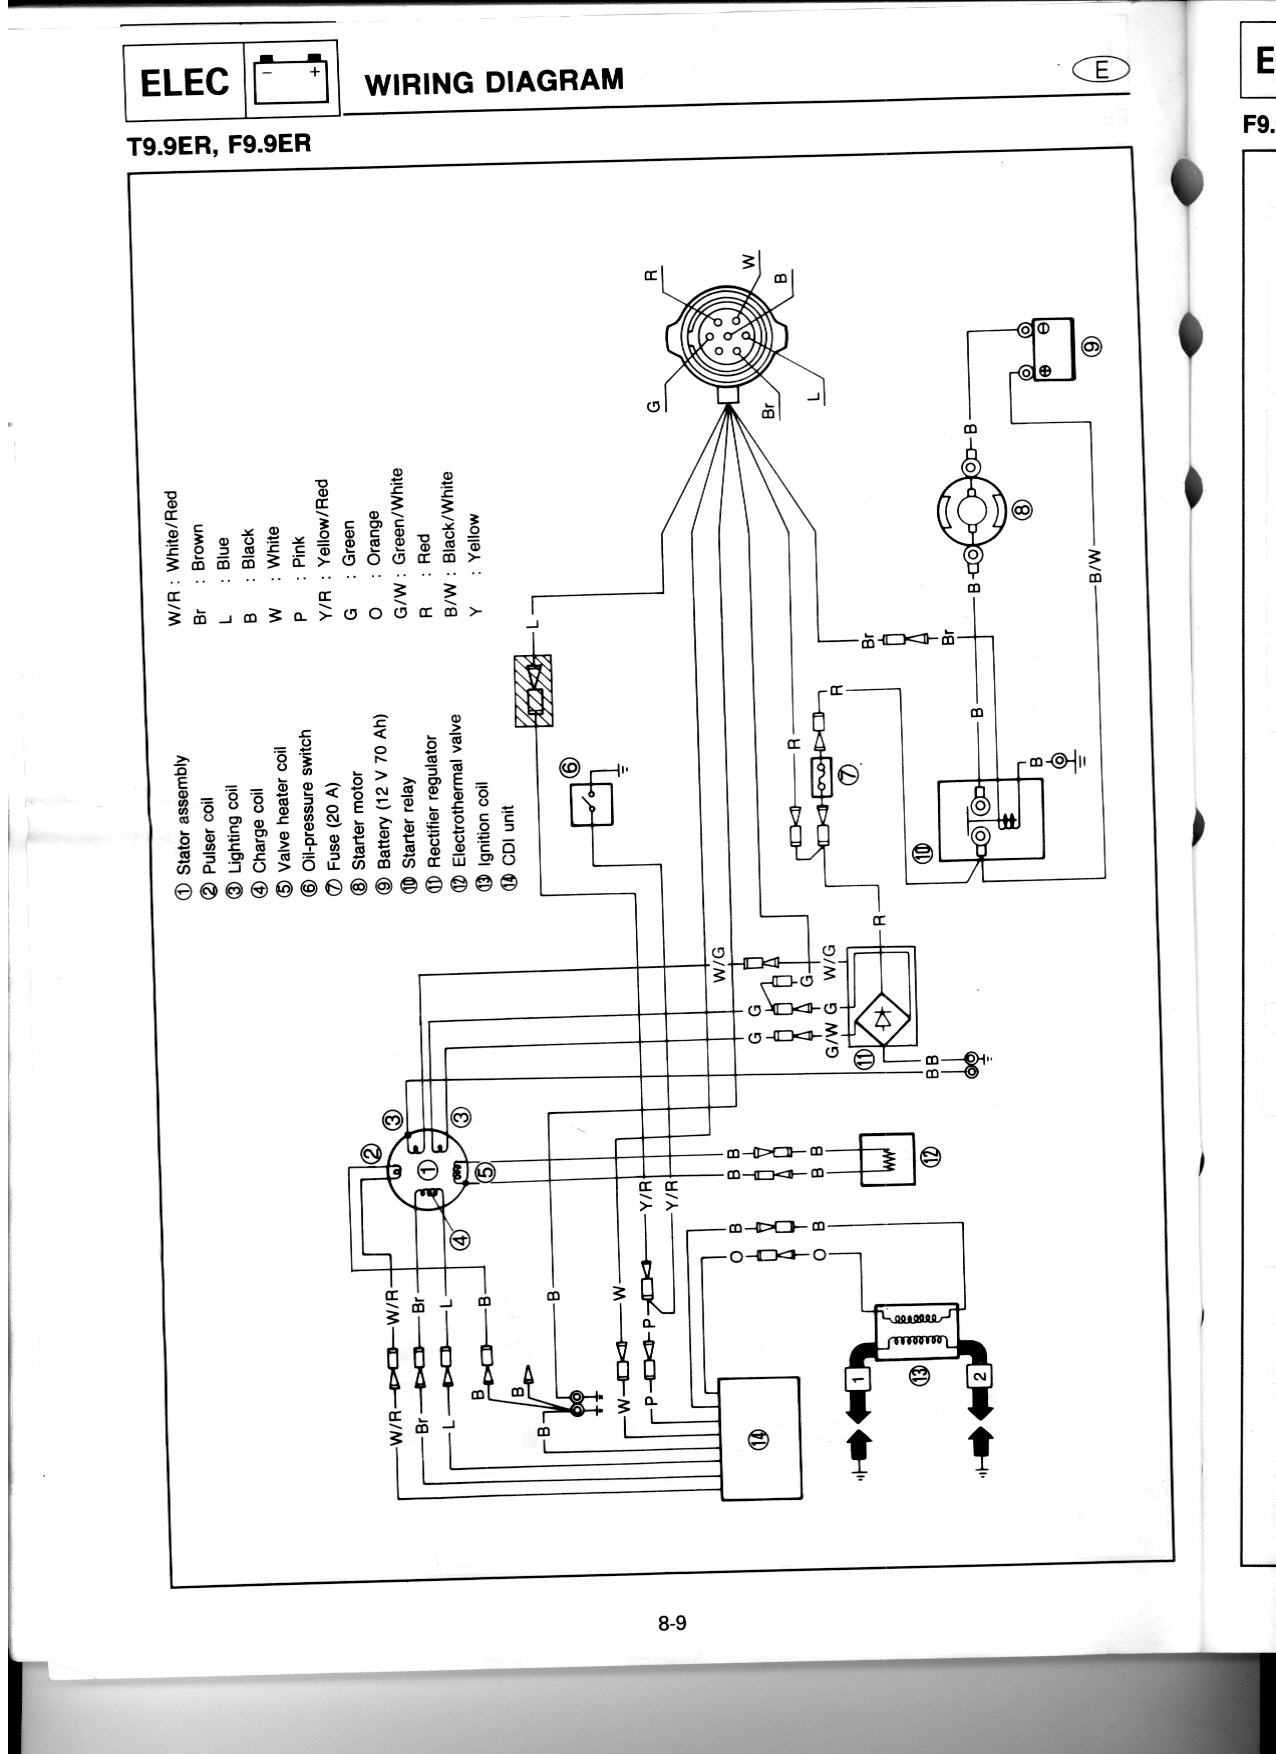 T9.9_Wiring_Diag?resize\=665%2C914 yamaha hpdi 200 wiring diagram yamaha 200 saltwater series yamaha 200 outboard wiring diagram at nearapp.co